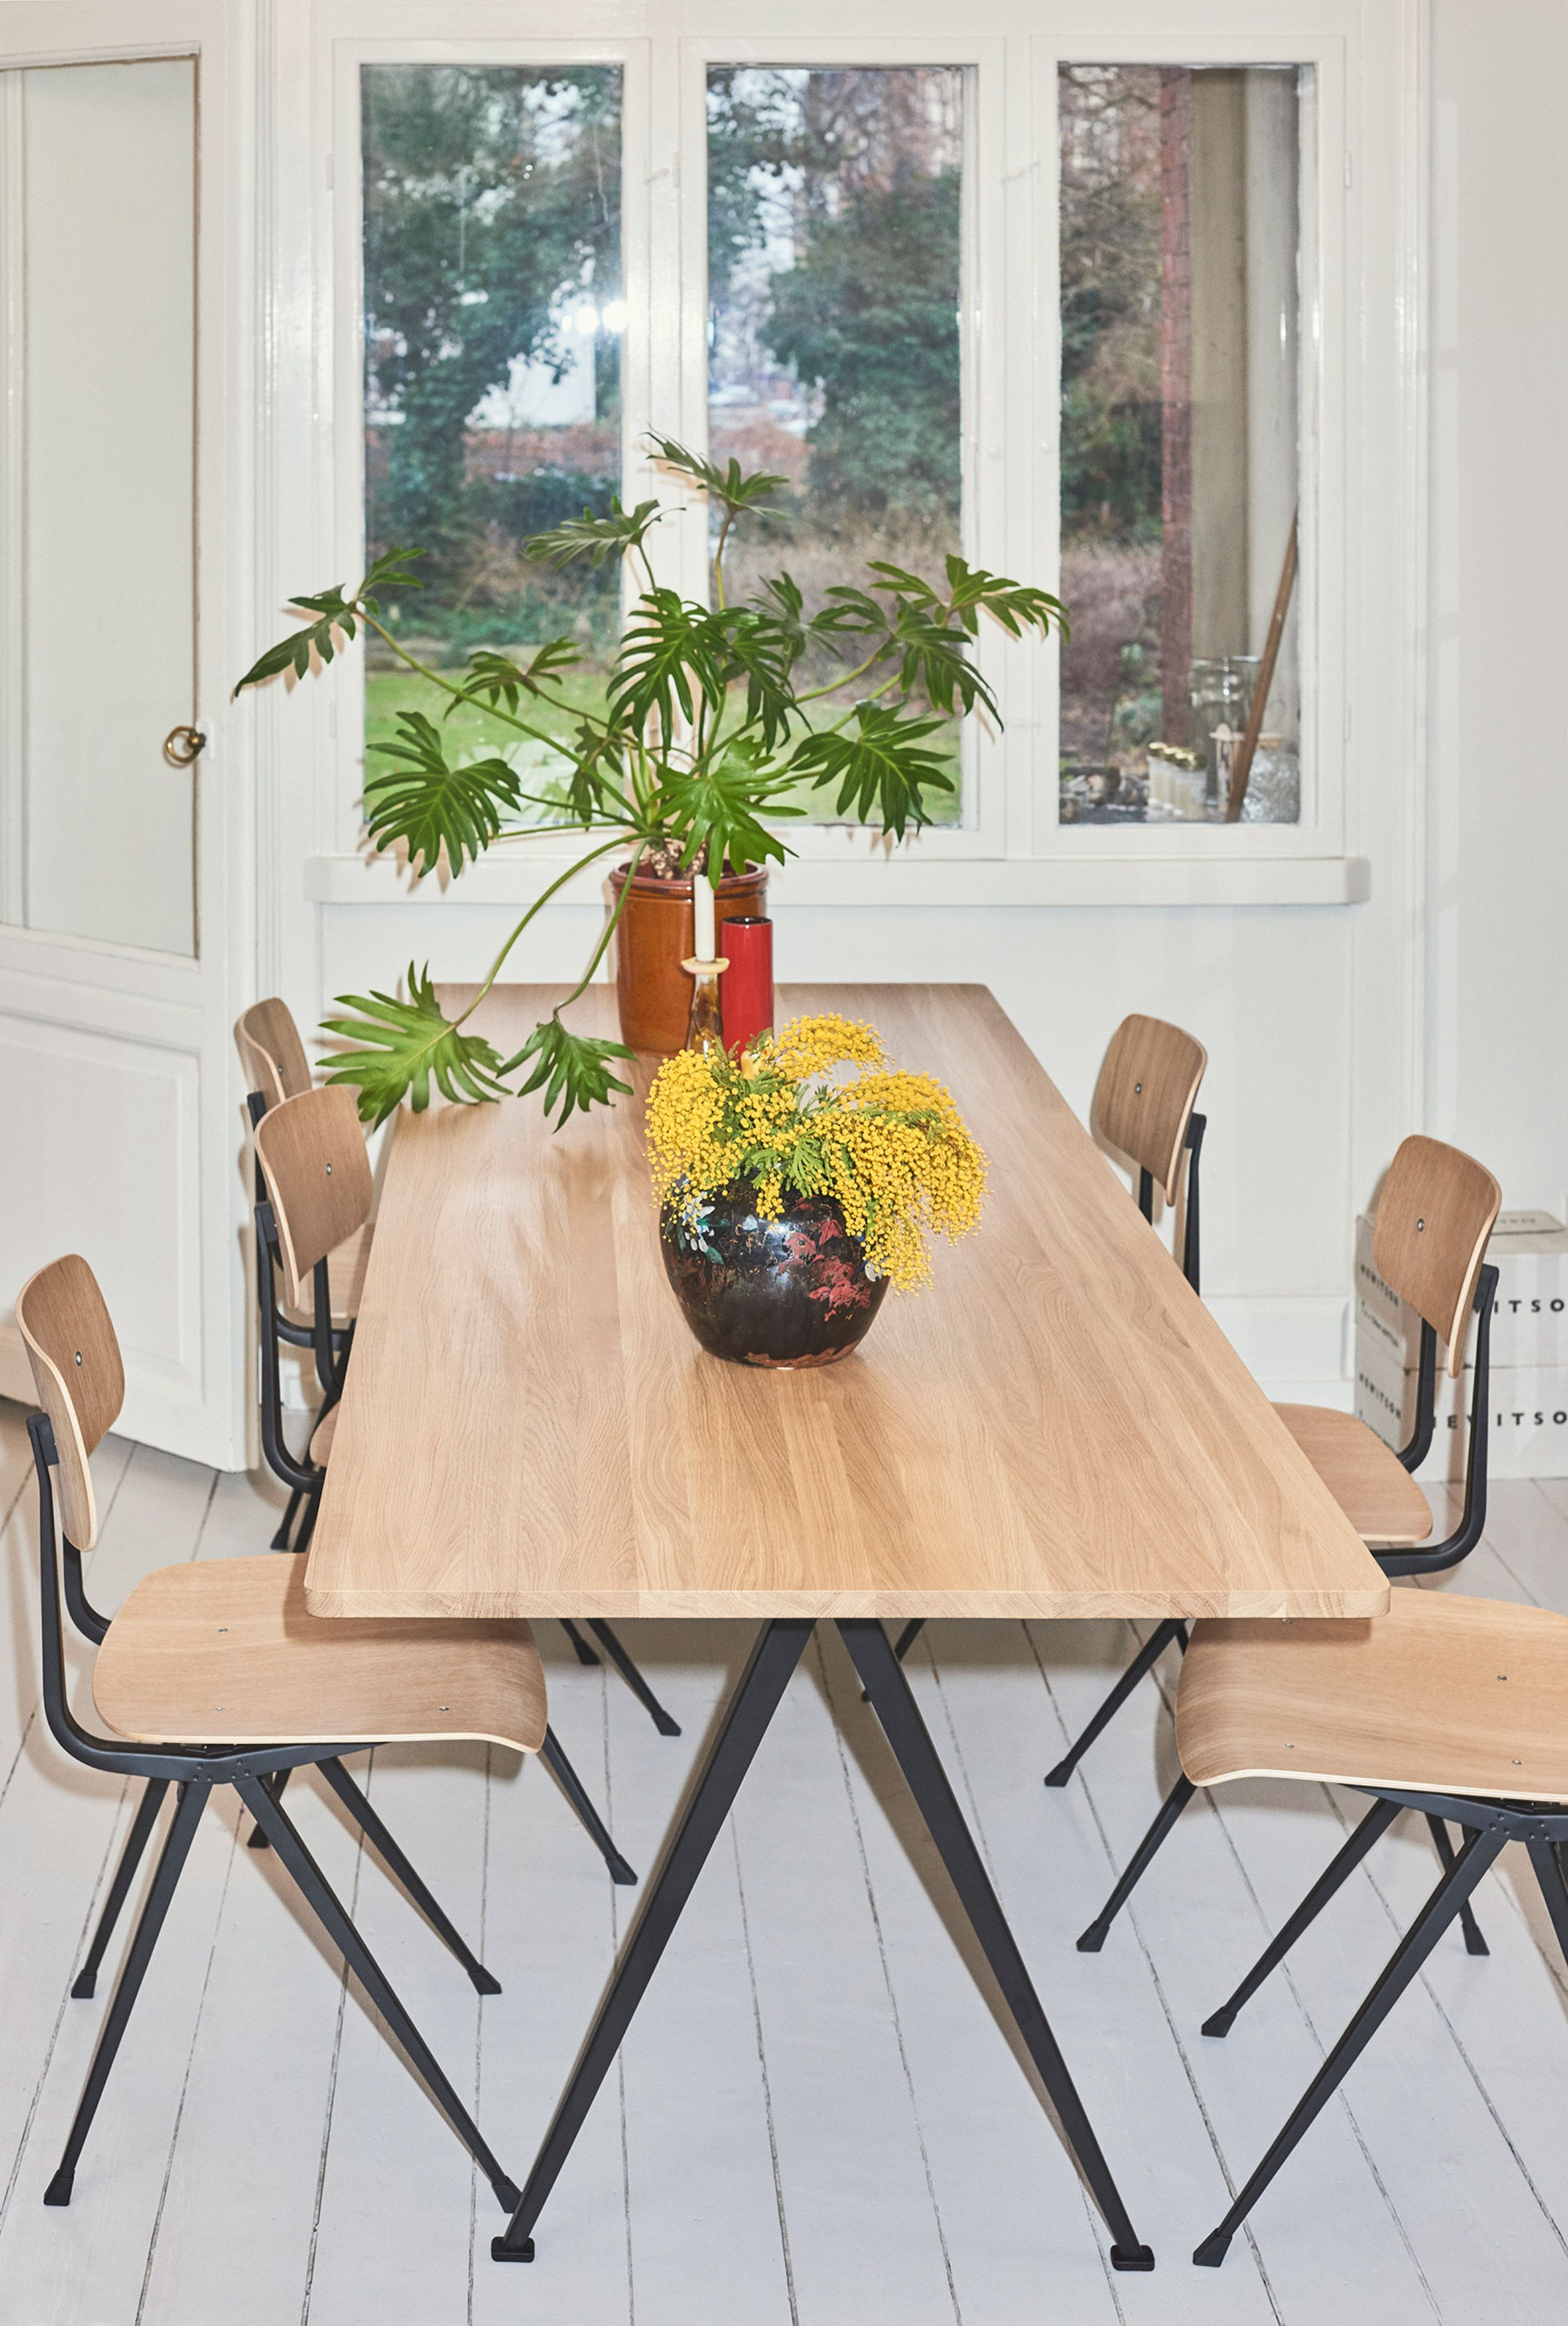 hay reissues mid century chair and table designed by gerrit rh pinterest com